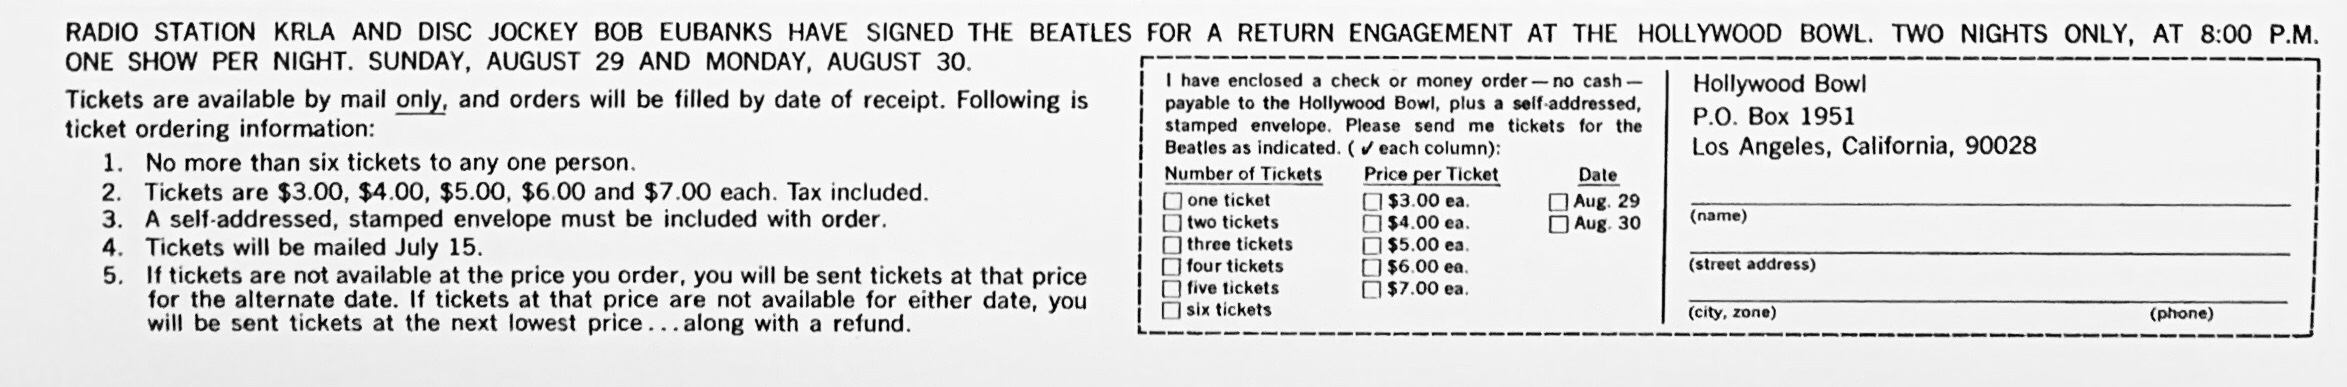 Lower portion of poster with form used by fans to order tickets to the 1965 Beatles concert at the Hollywood Bowl. Check out those prices!